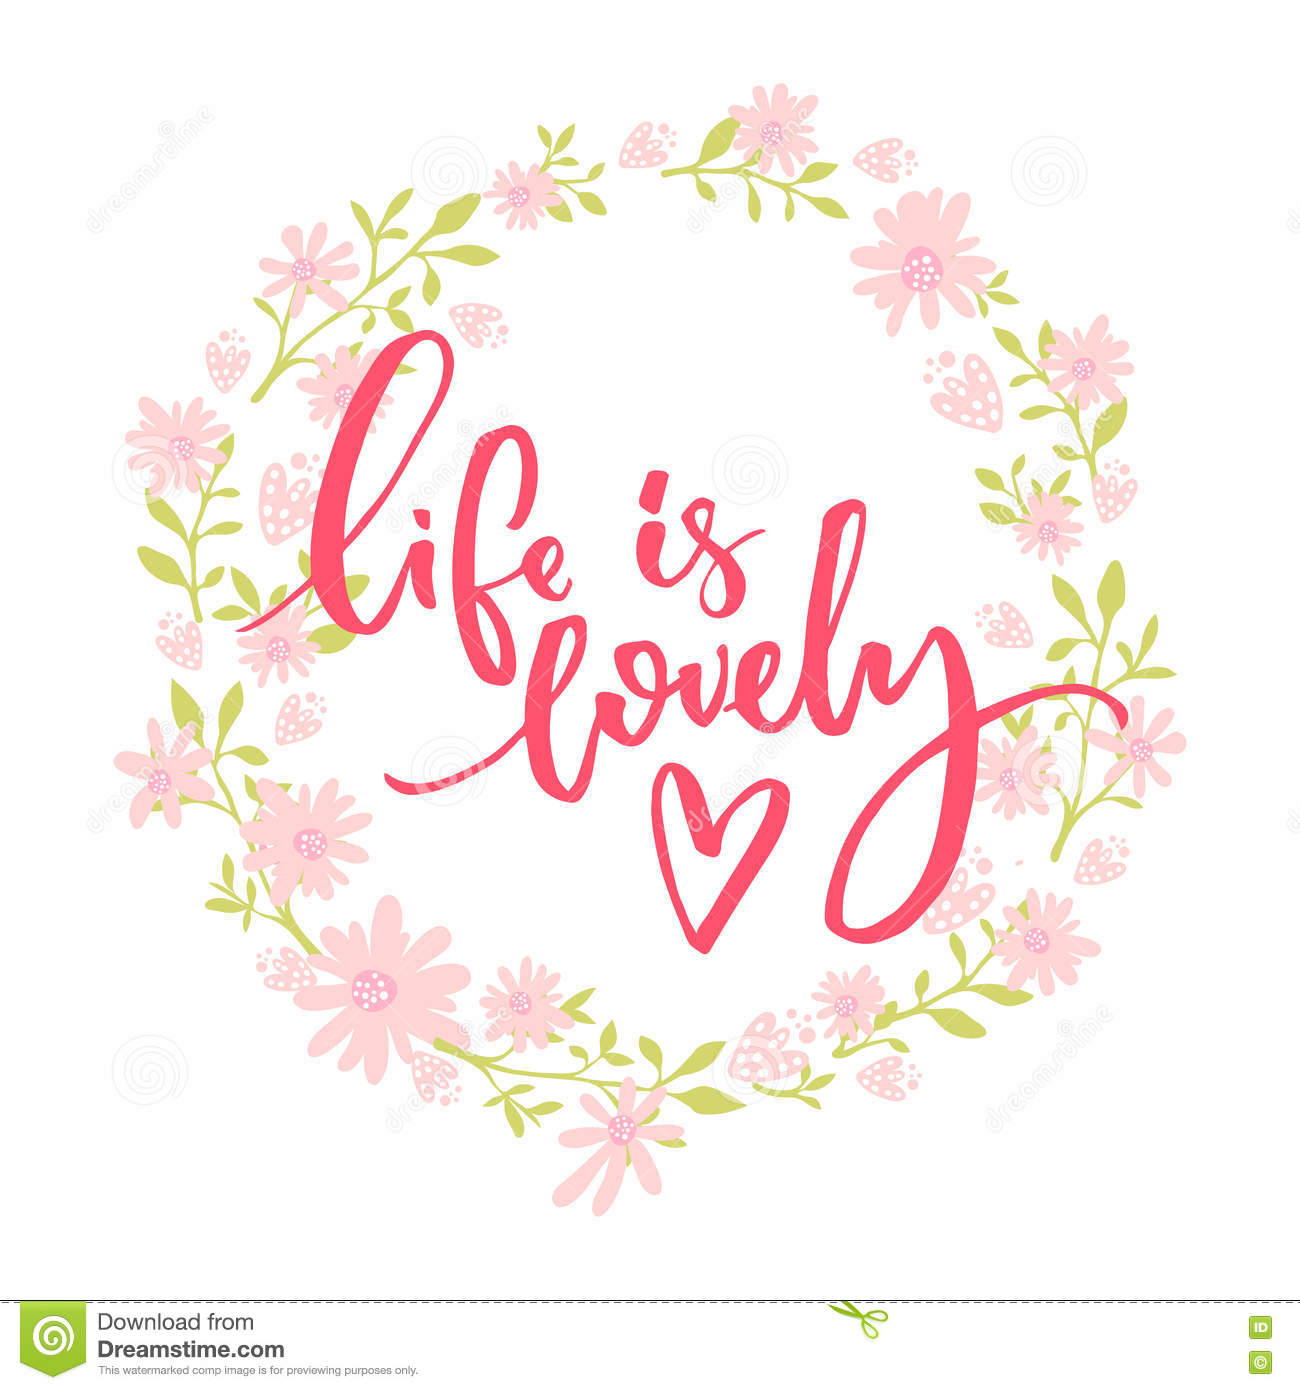 Life is lovely whimsical quote brush lettering at pink